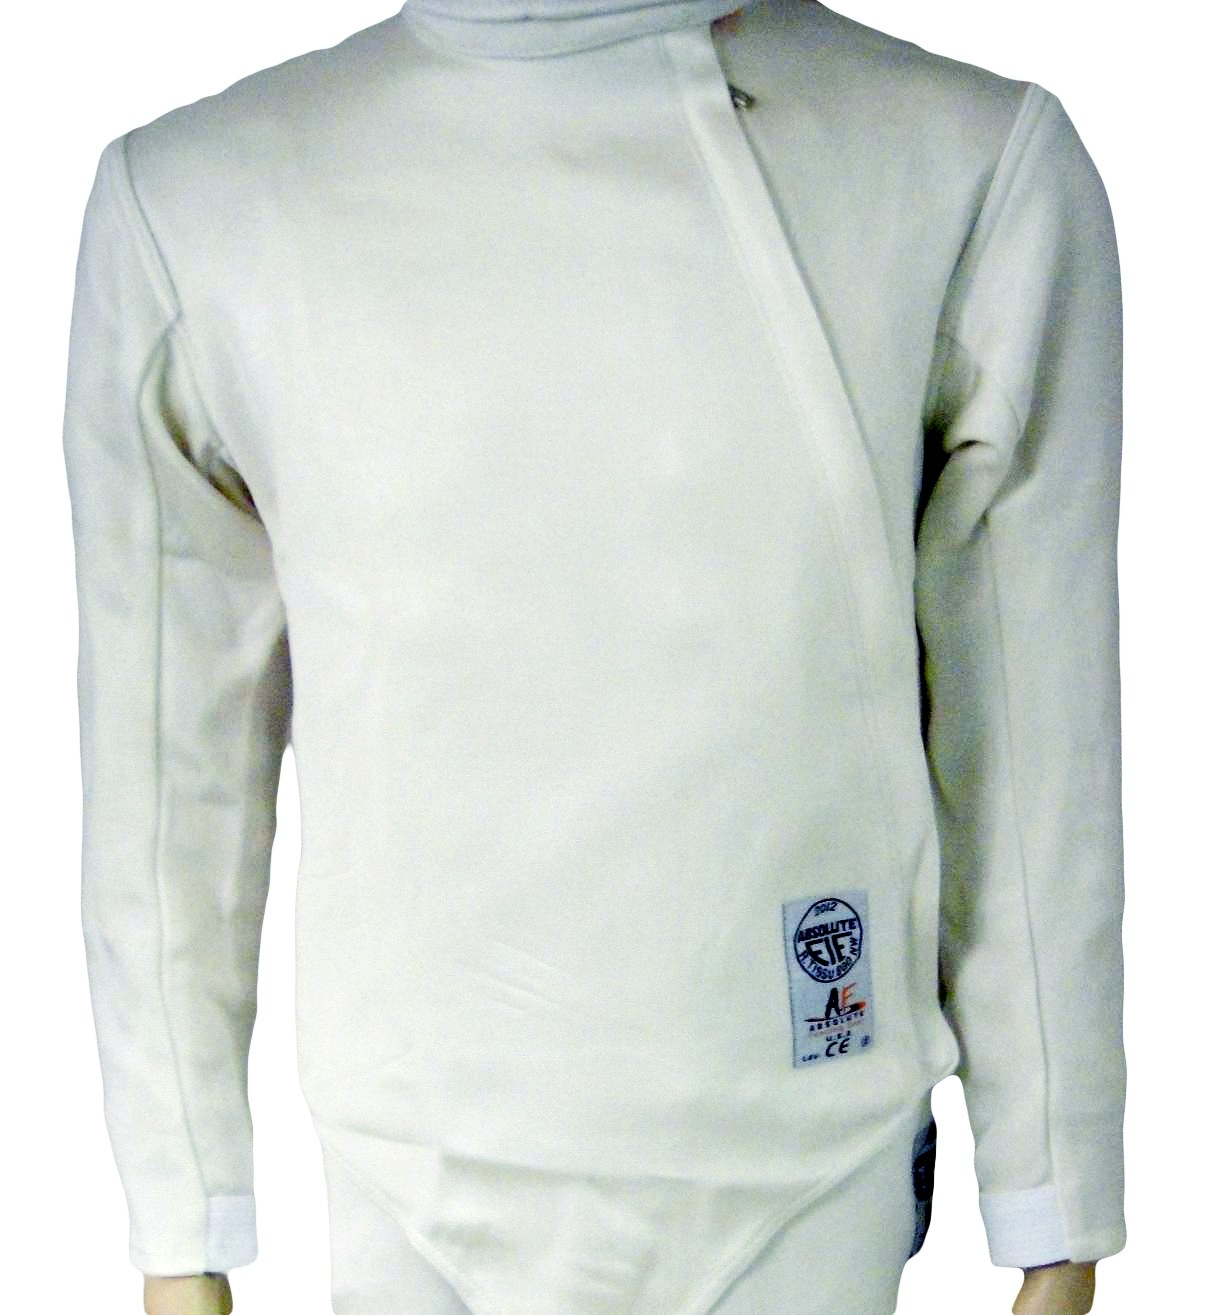 2012 COMPETITION FIE JACKET FOR MEN